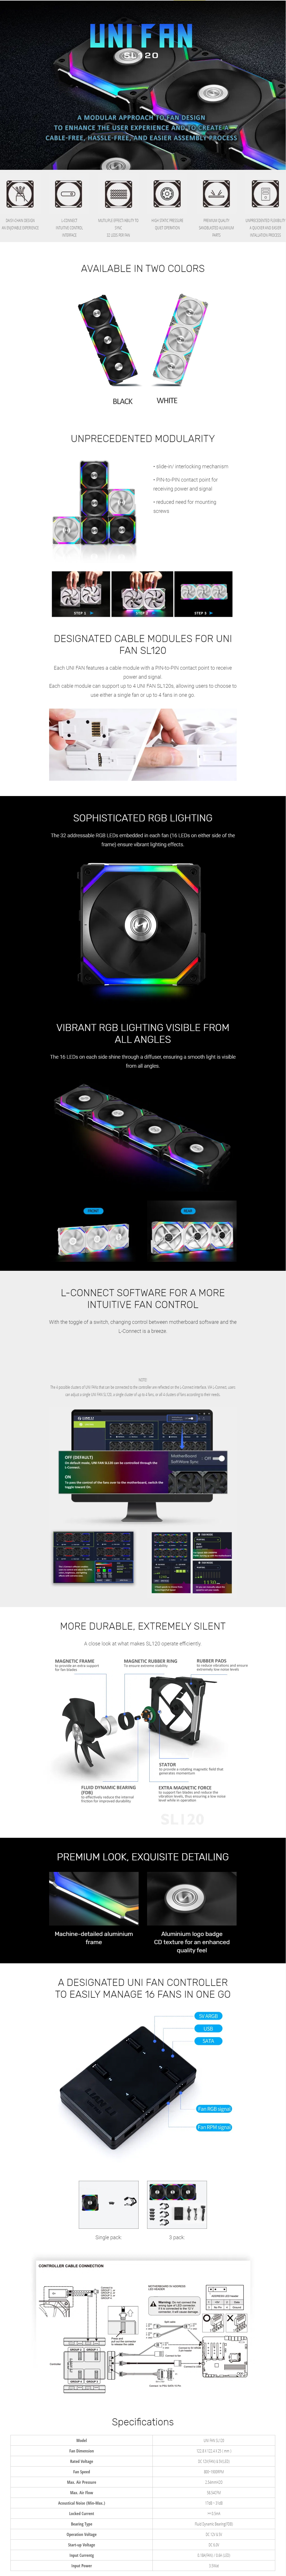 A large marketing image providing additional information about the product Lian-Li UNI Fan 120mm Cooling Fan Black - Single Pack - Additional alt info not provided